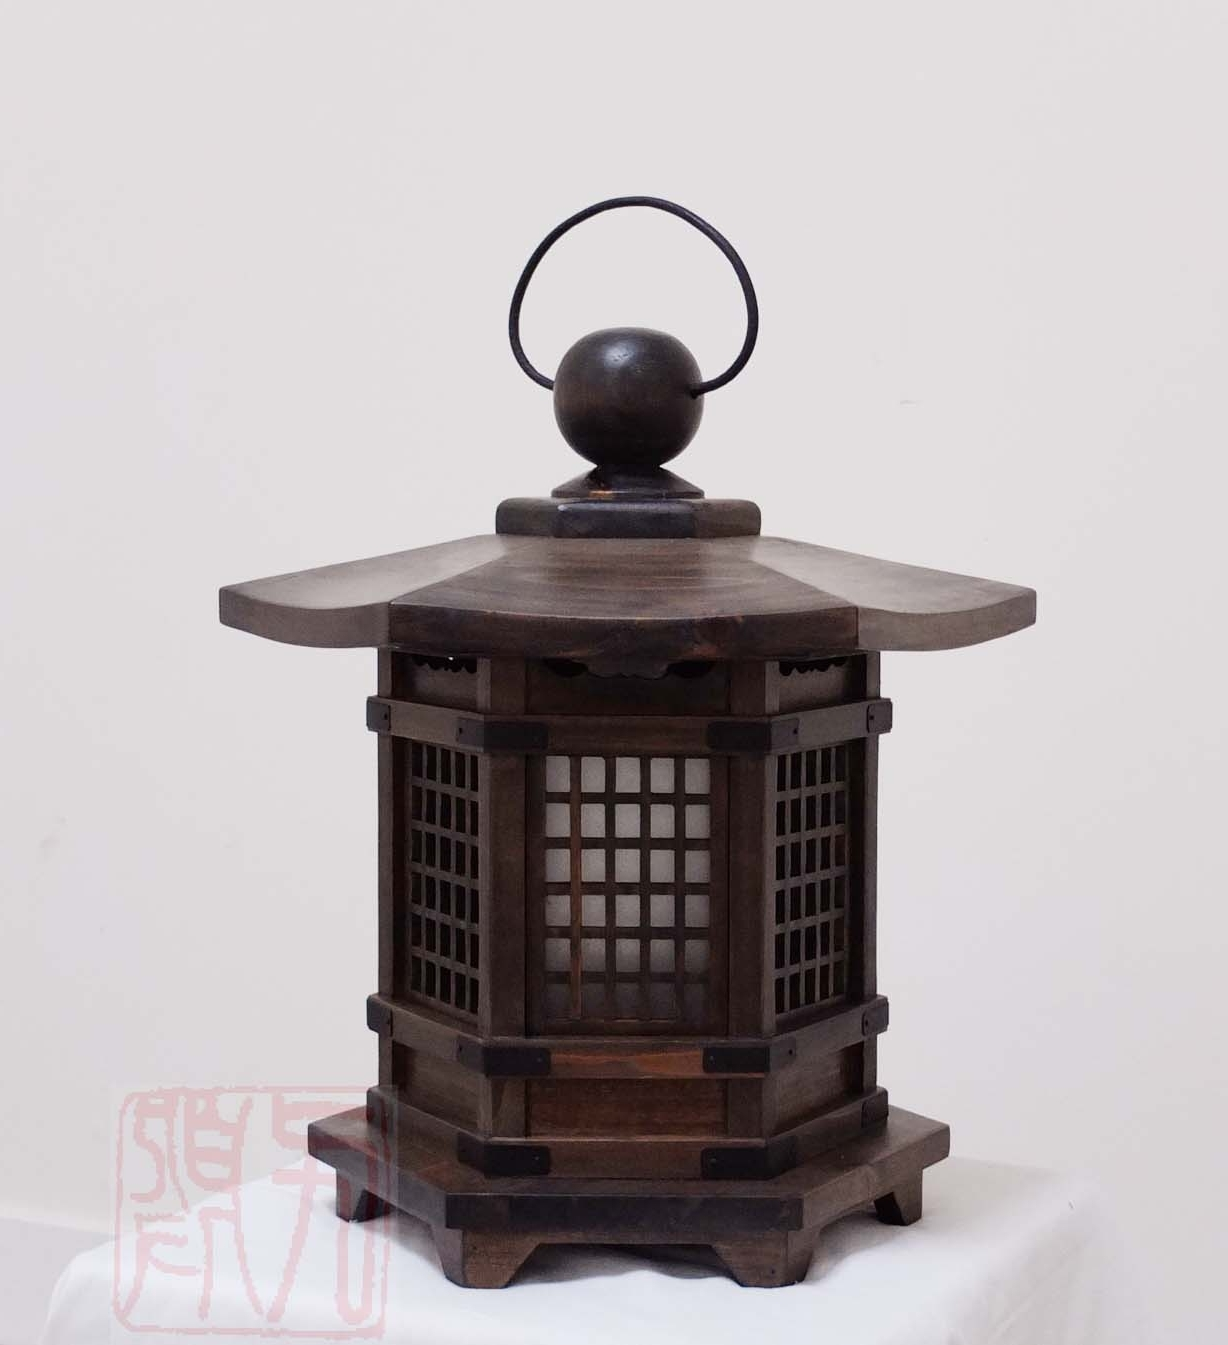 Fashionable Outdoor Japanese Lanterns Intended For Pagoda Lantern (Wl1) – Eastern Classics (View 4 of 20)